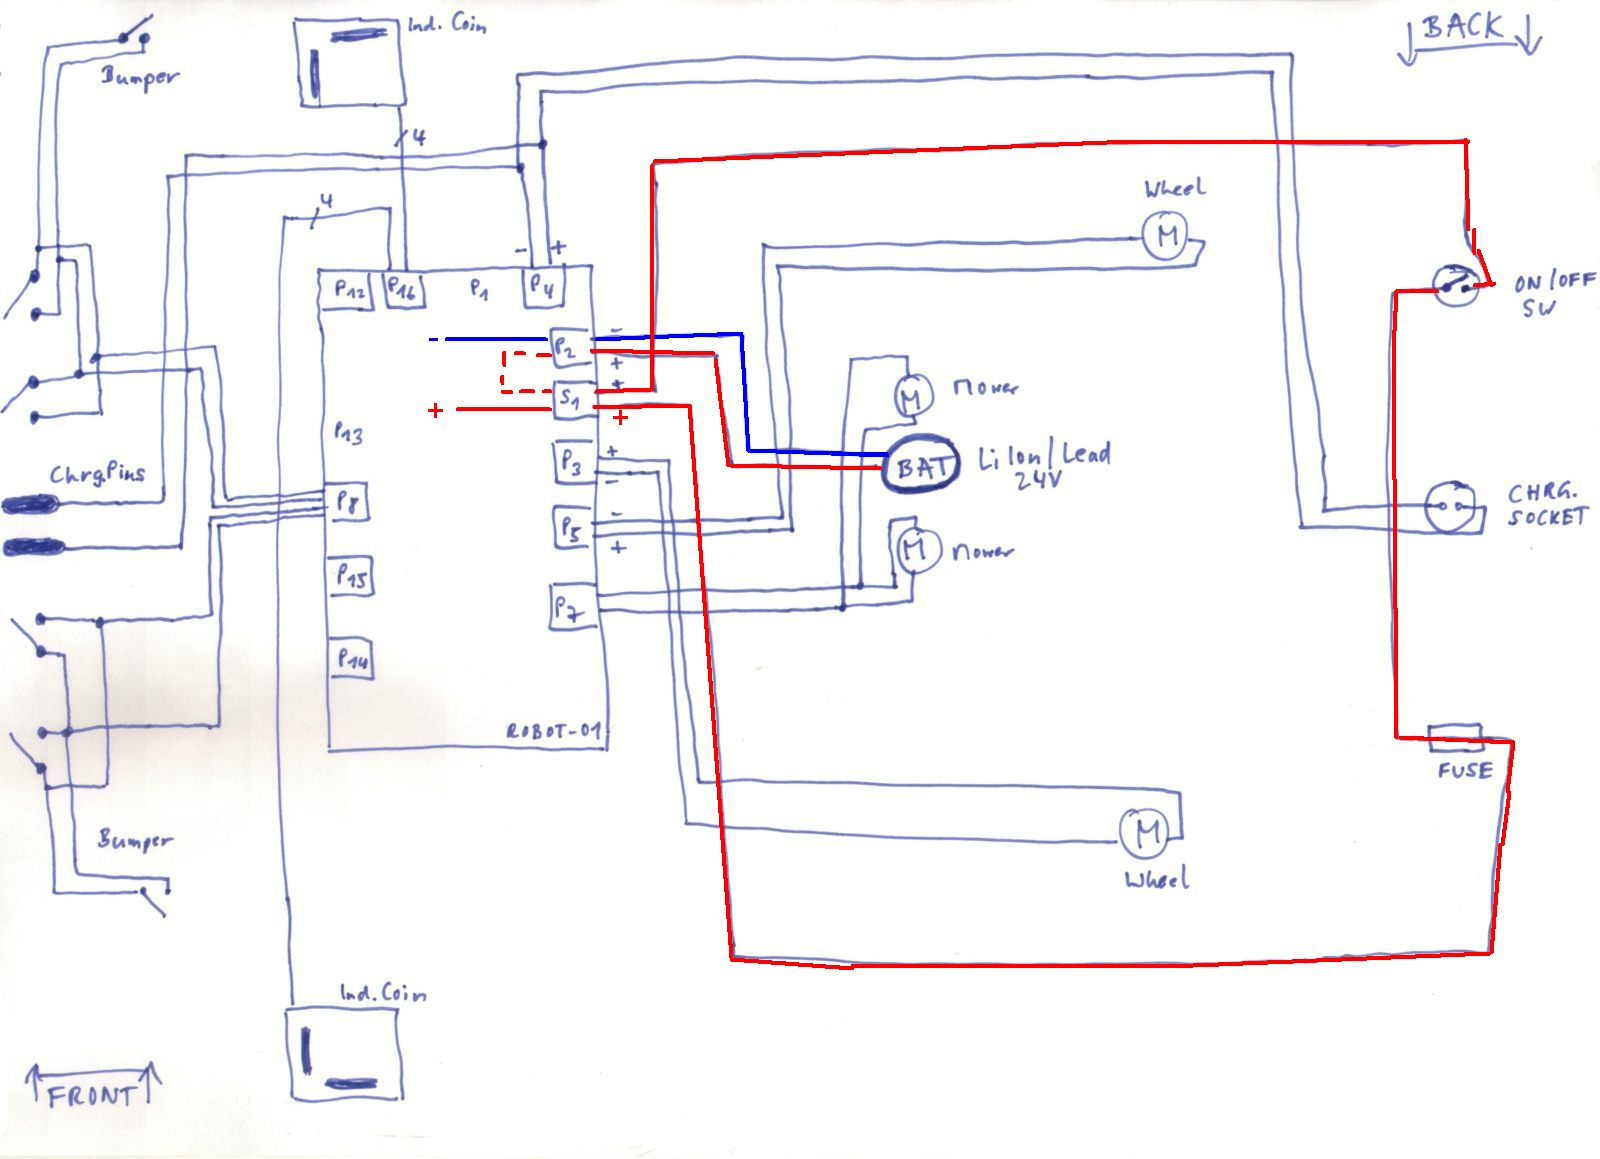 wiring im erdreich fast alle rasenm�hroboter induction loop wiring diagram at gsmx.co